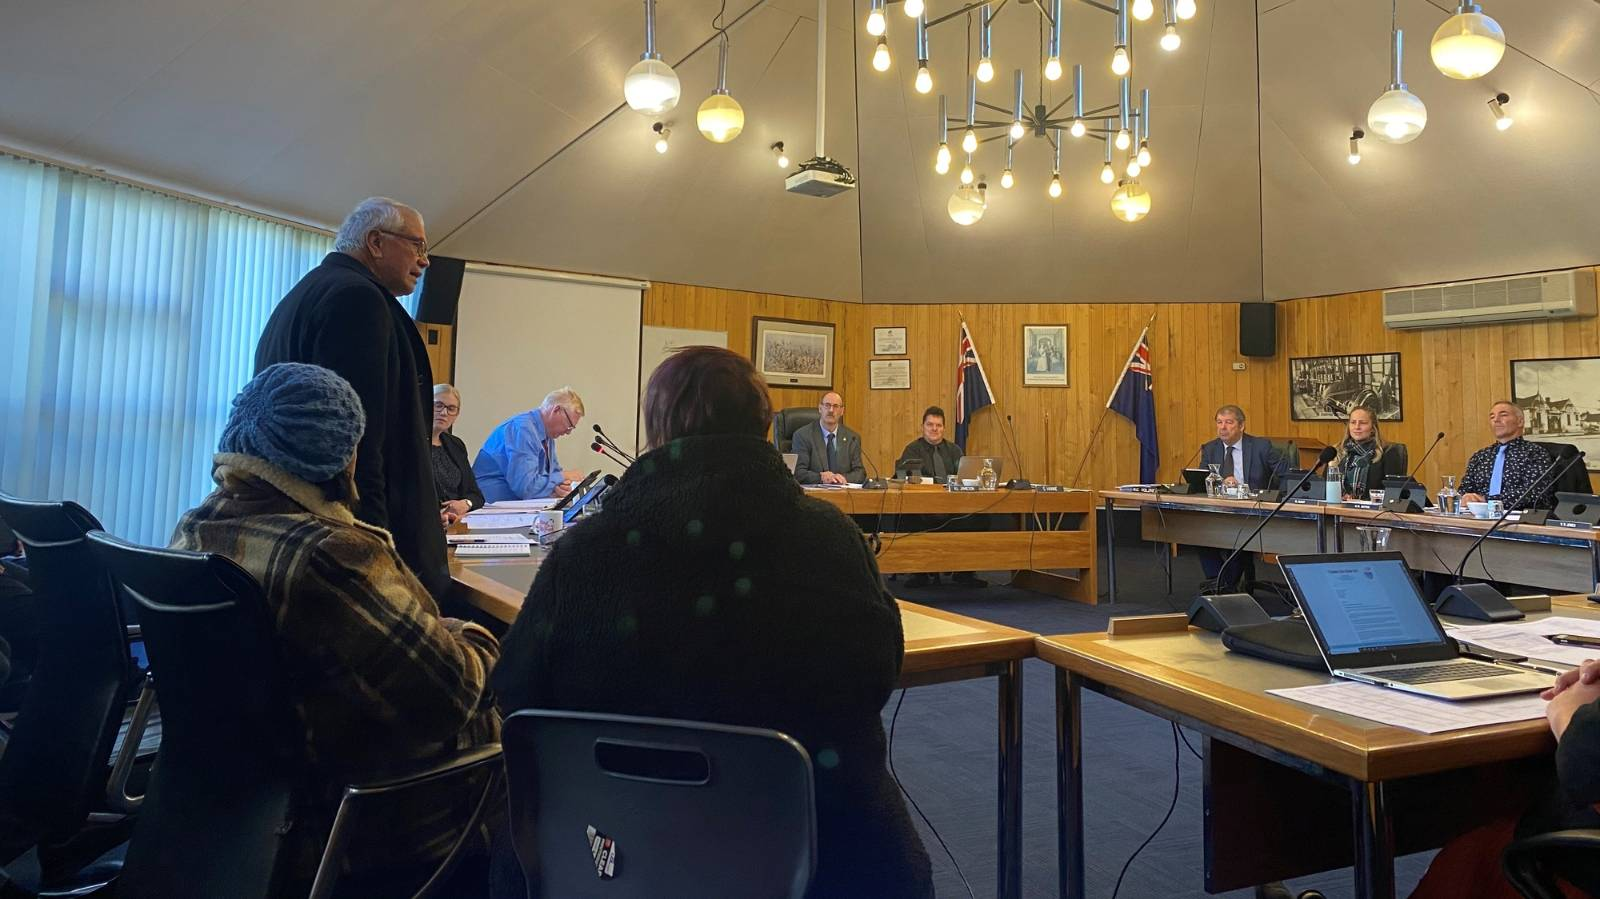 Council 'clearly out of touch', iwi say